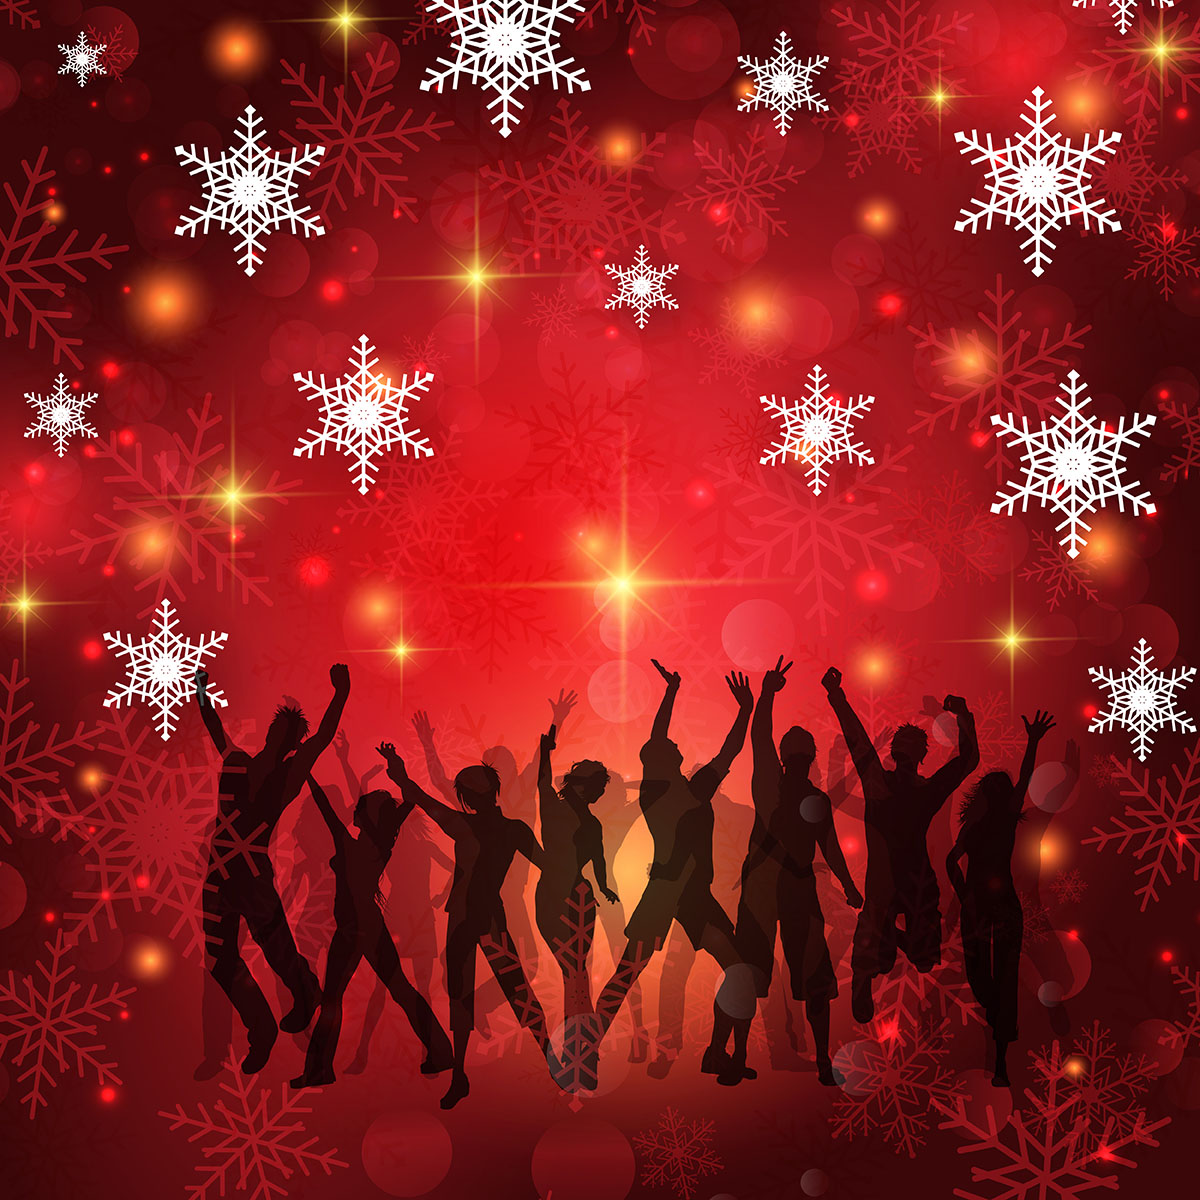 Christmas Party Background Download Free Vector Art